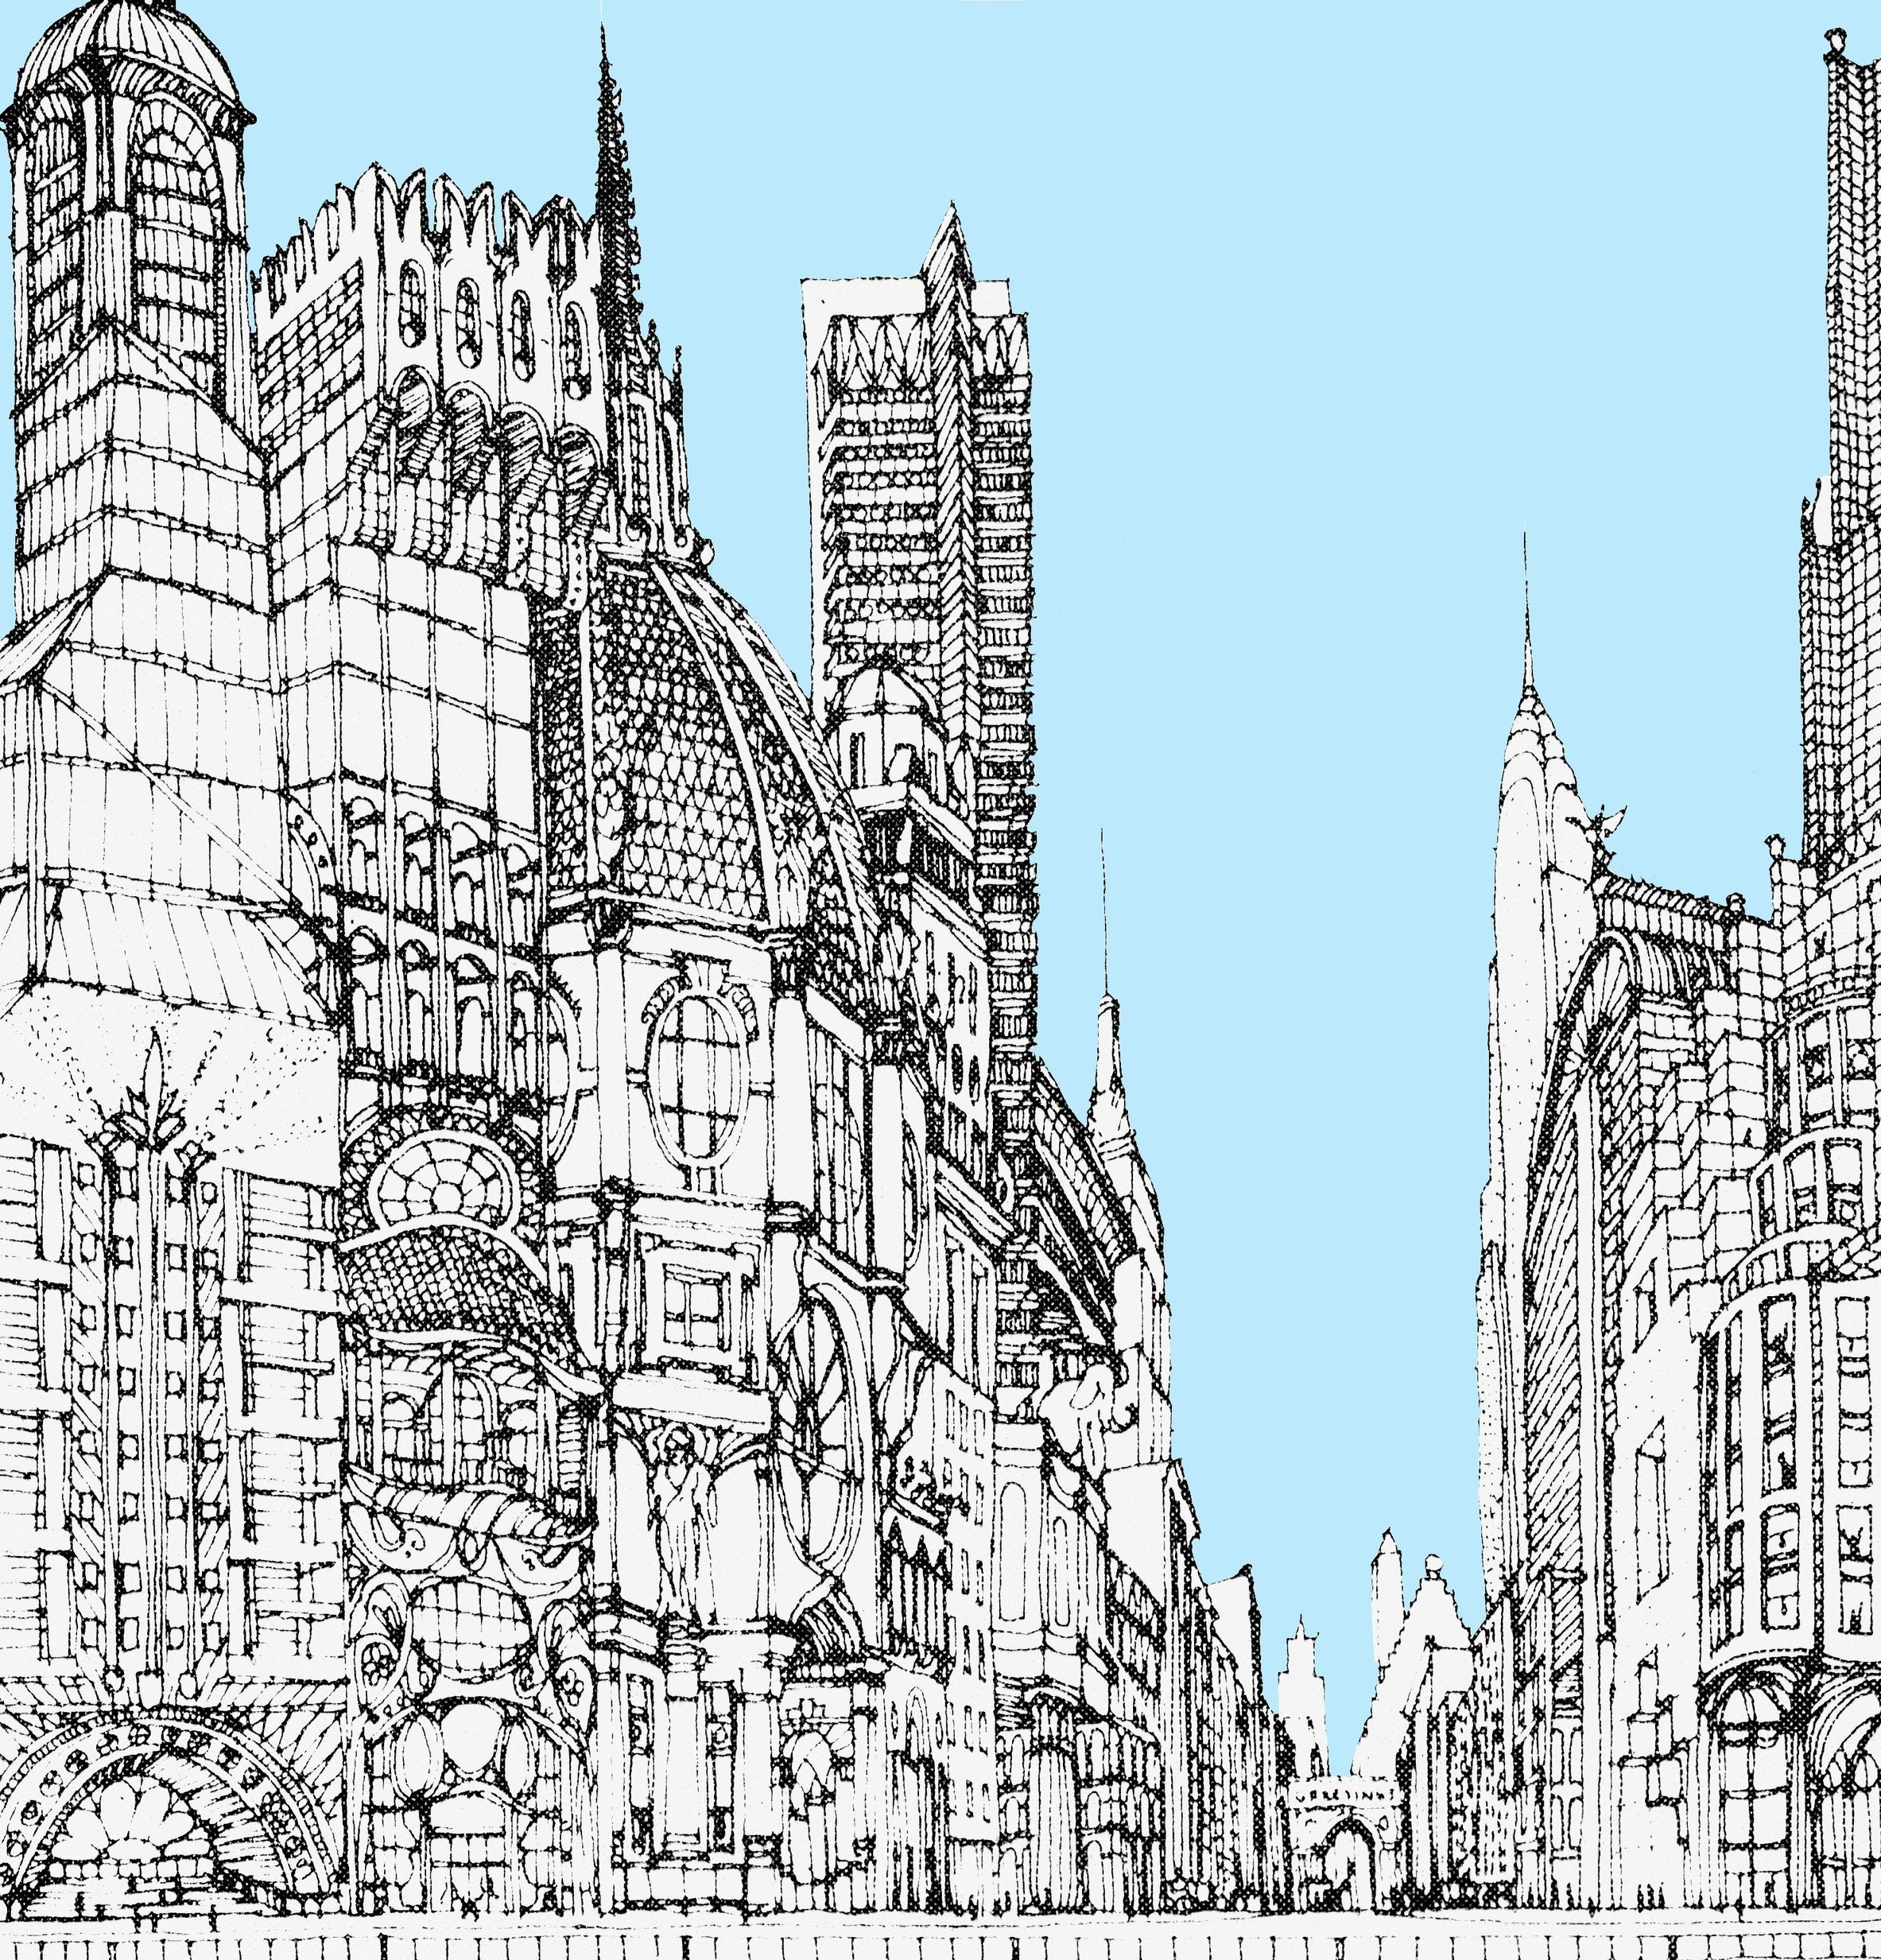 Fantastical drawing of a city street based on Midtown Zoning's Daylight Evaluation Chart (Kwartler/Janes)